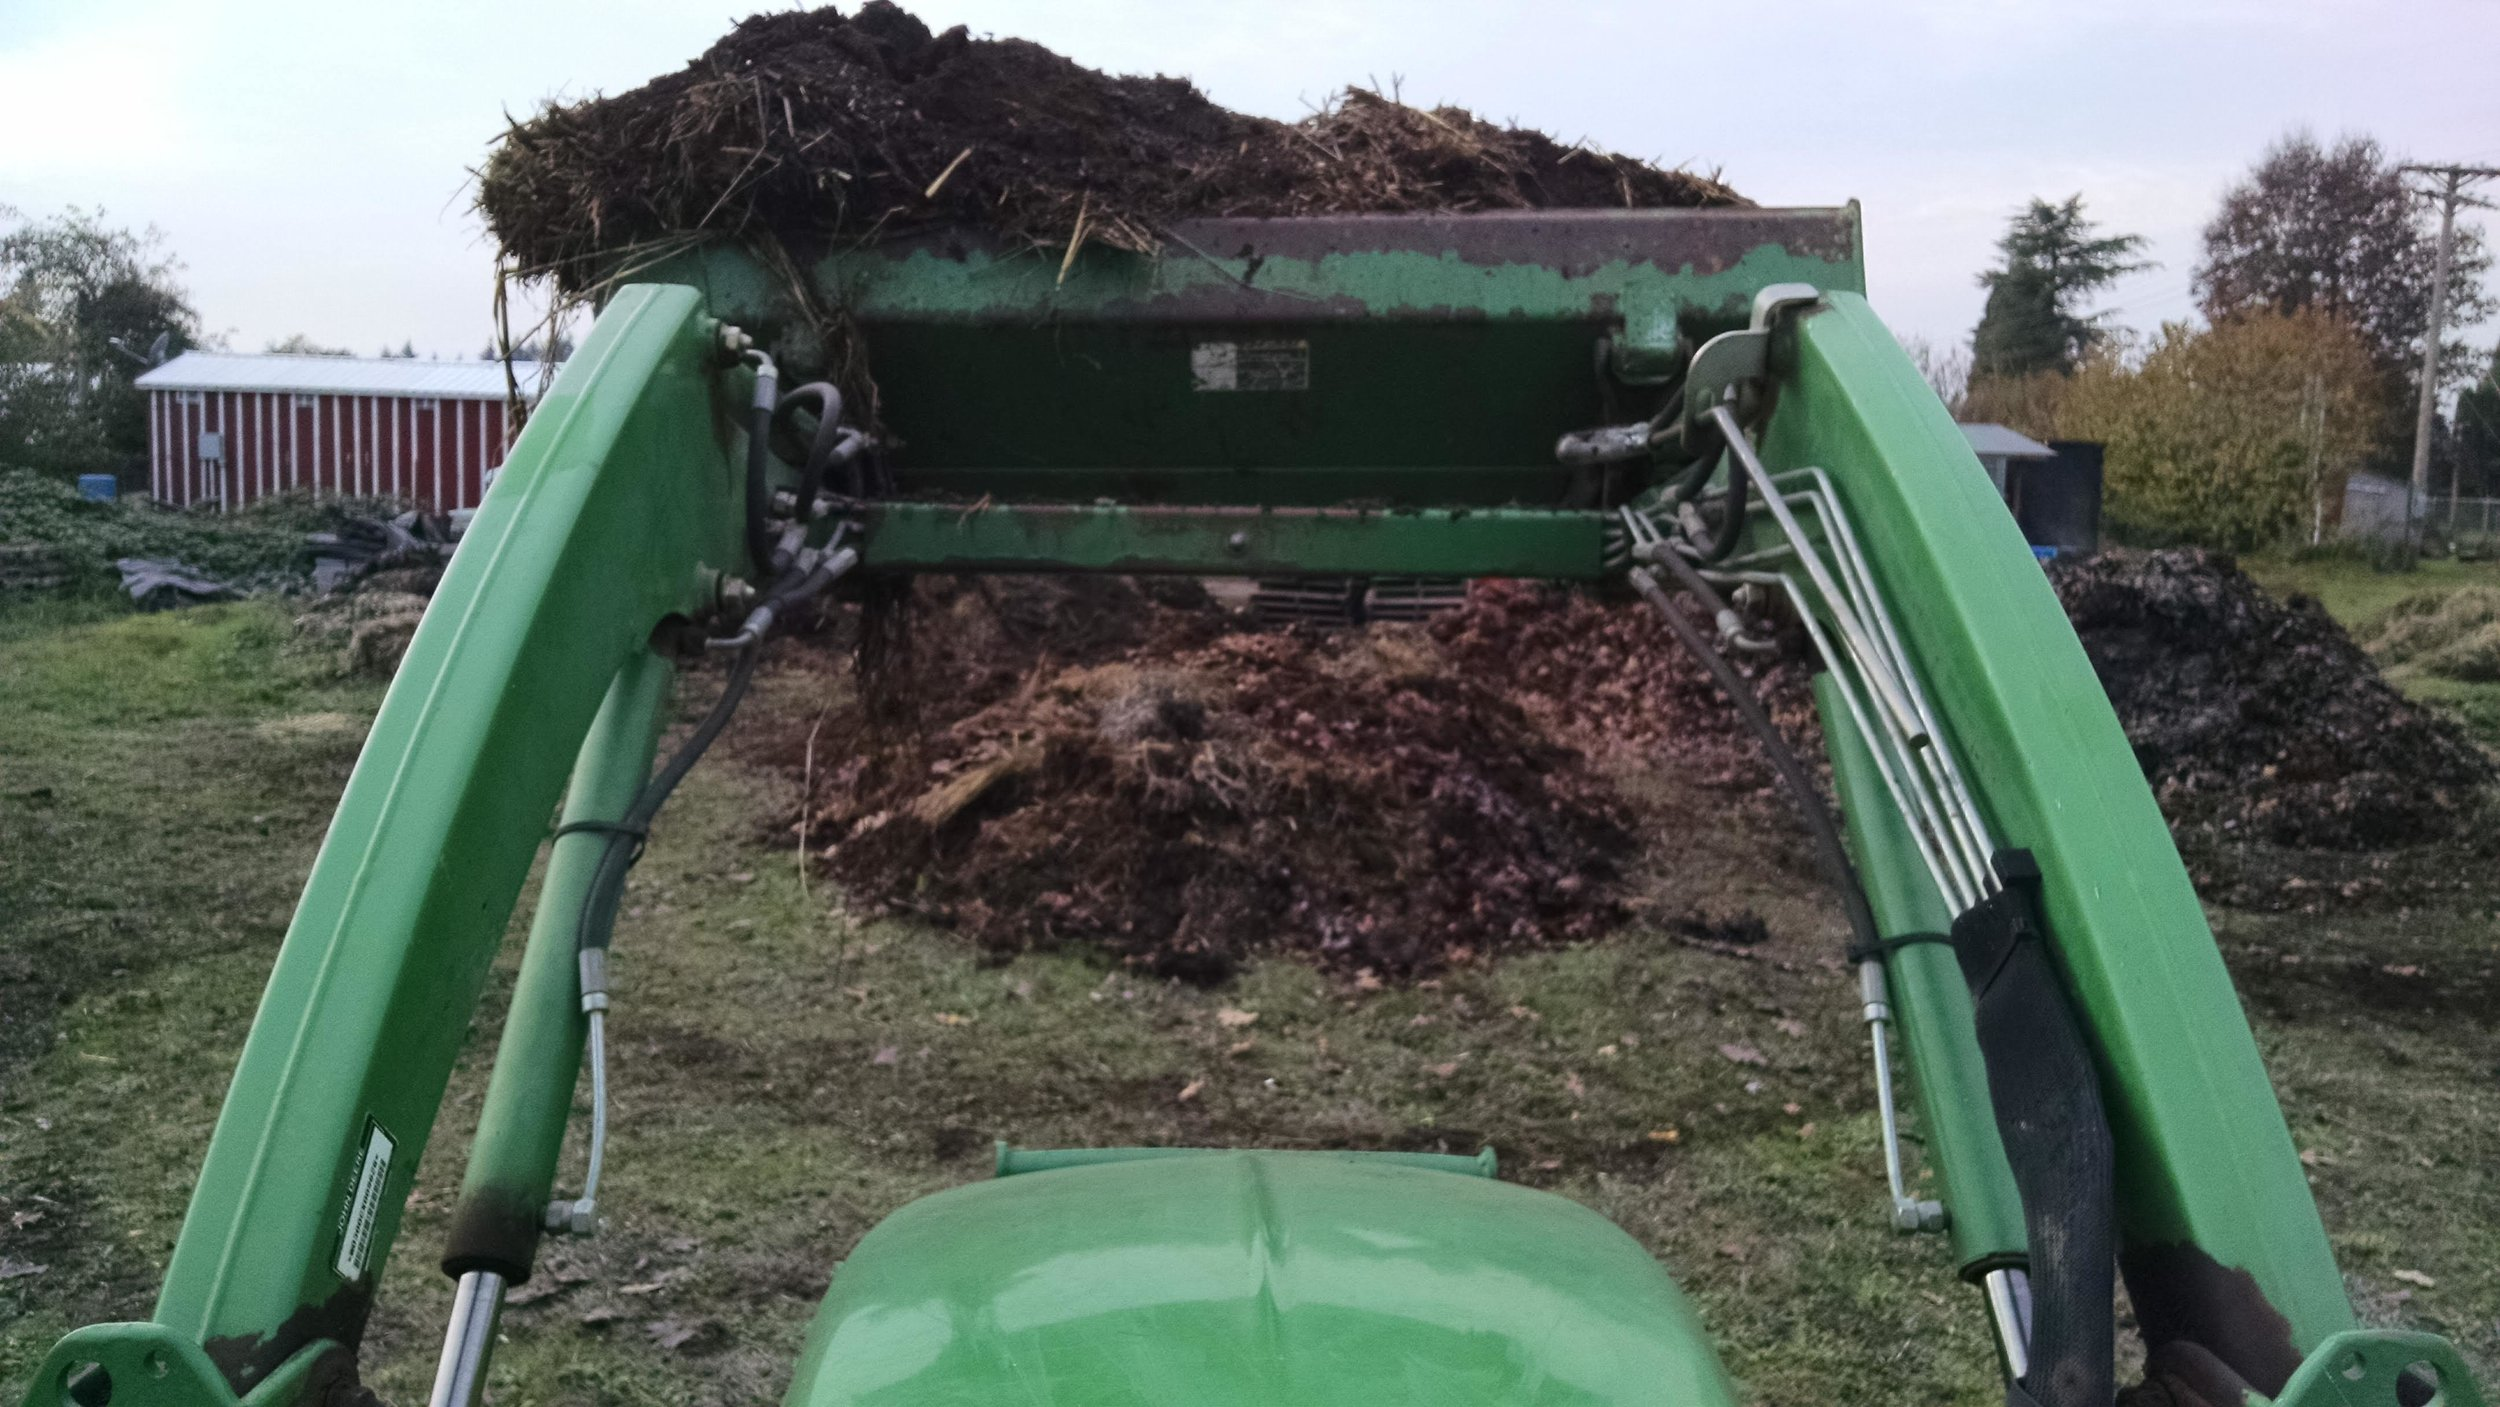 In my happy place, making a giant compost pile